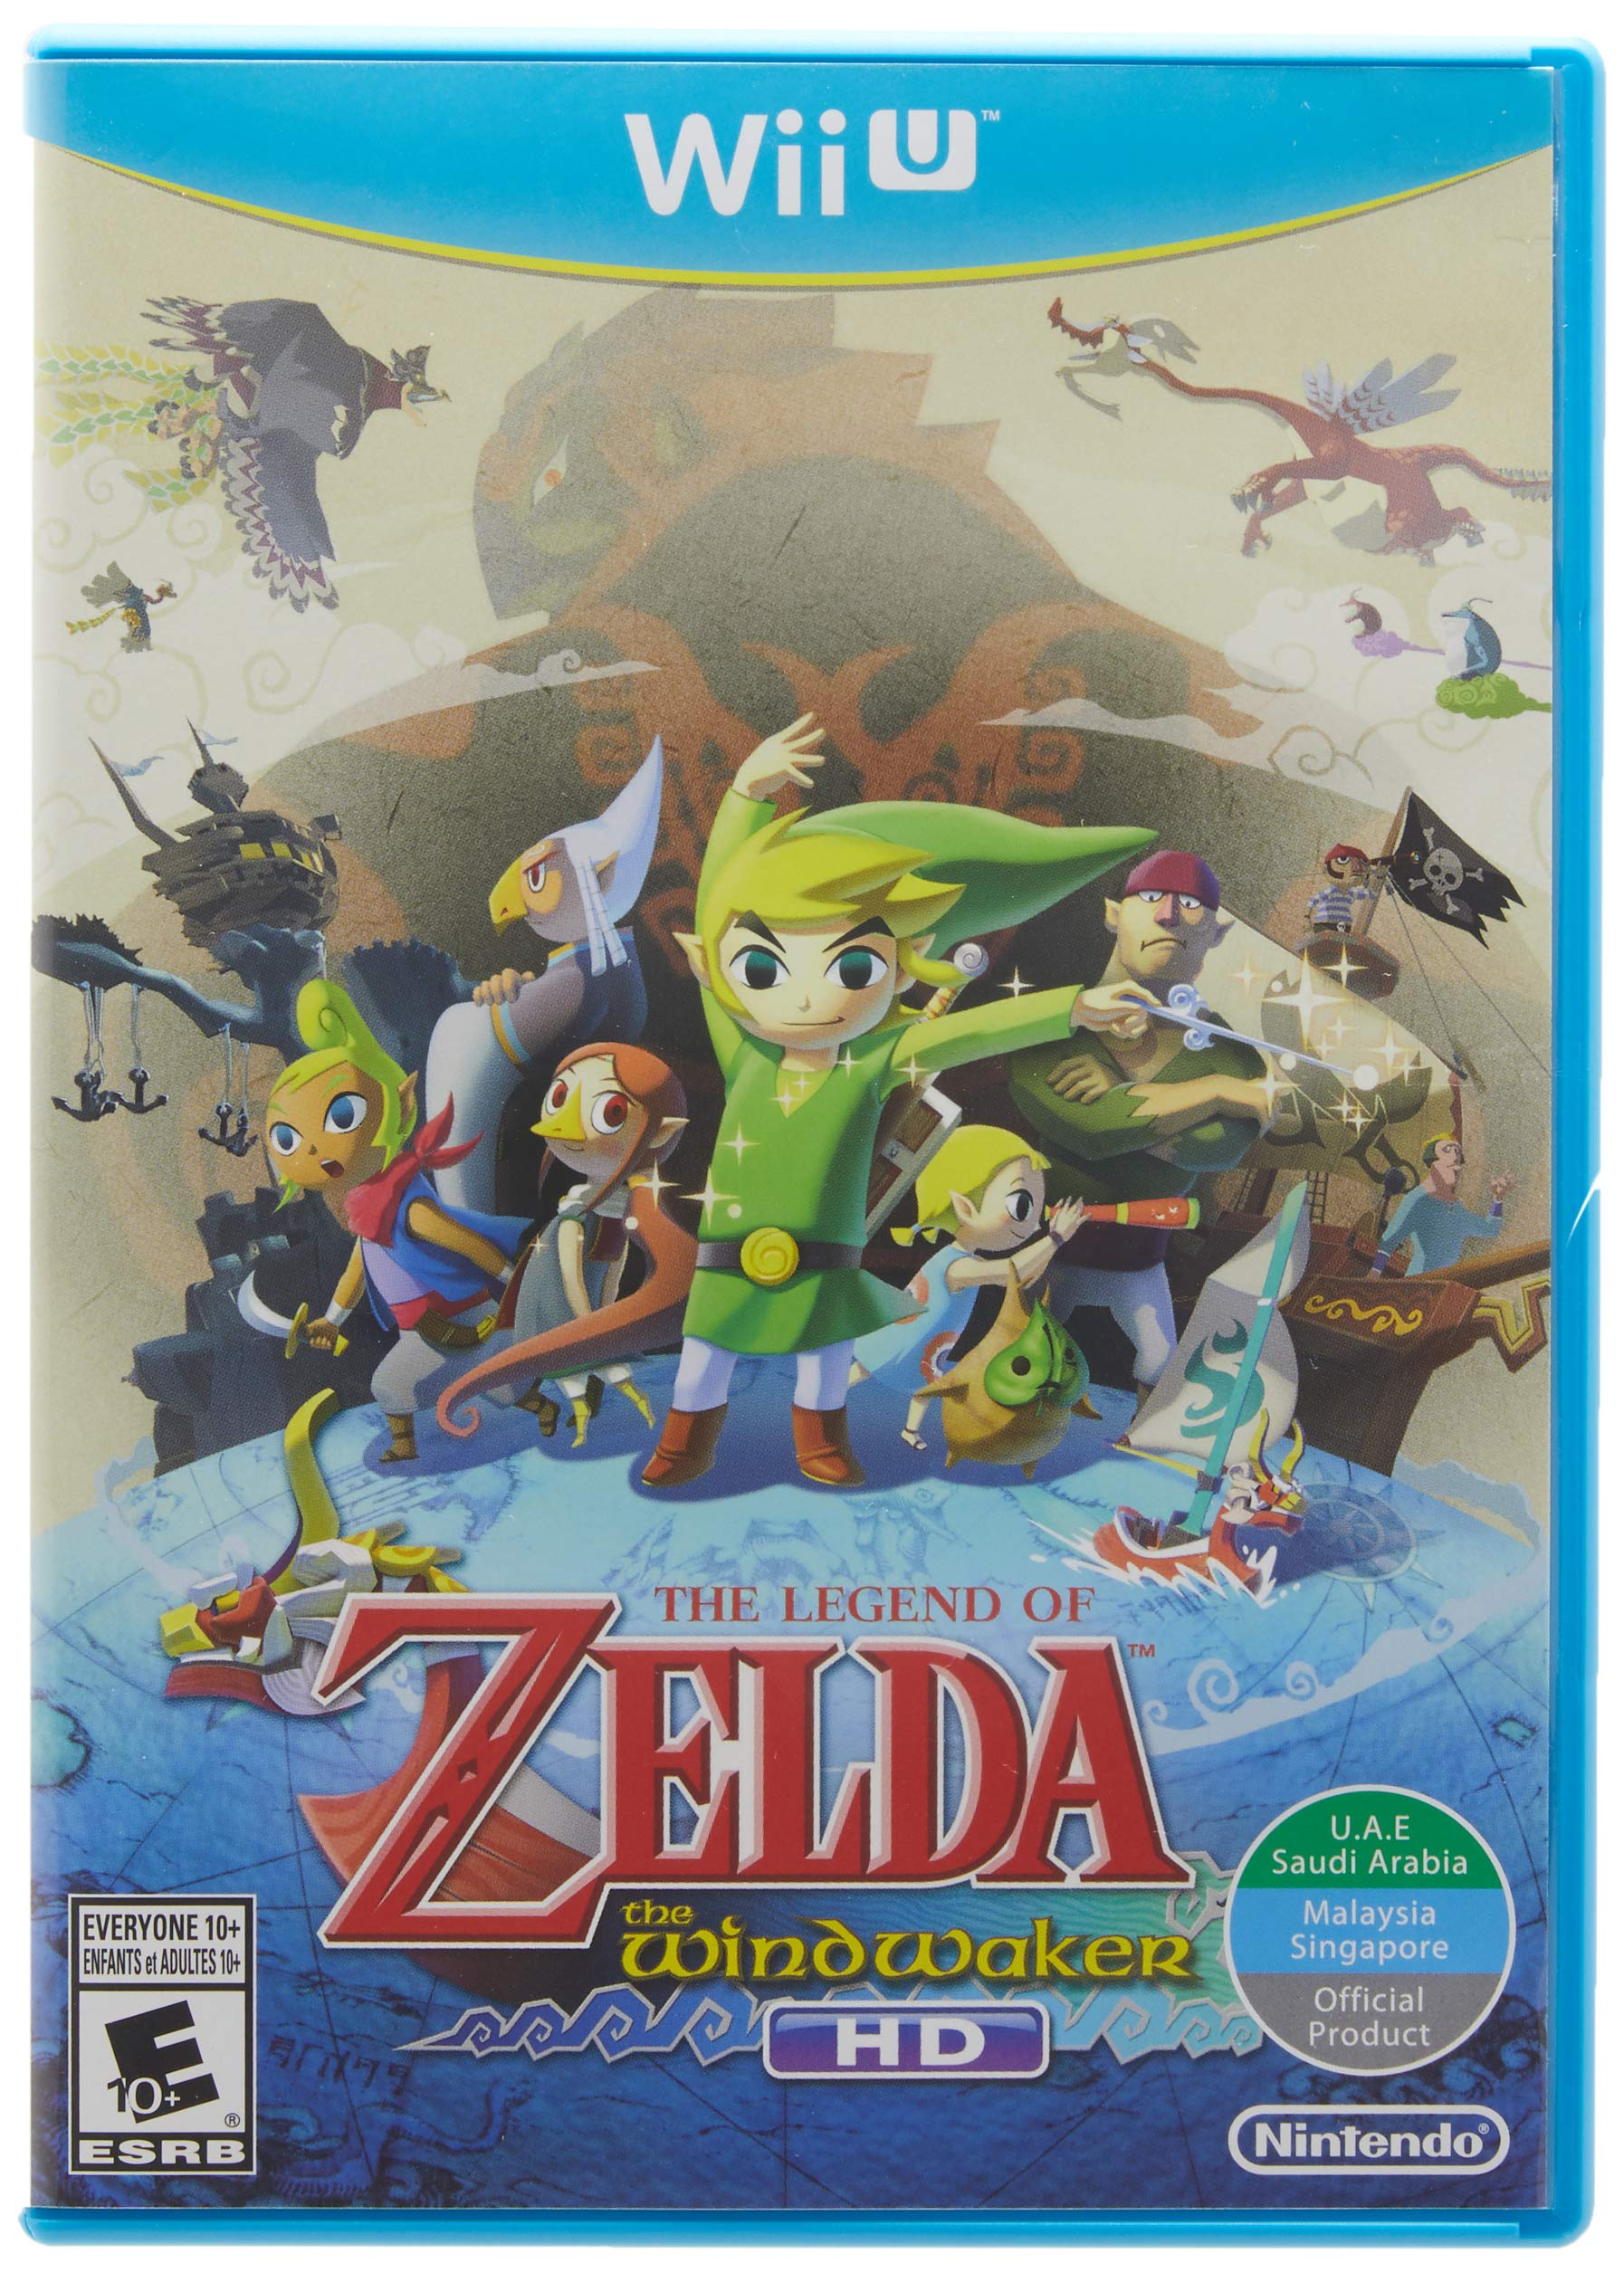 The legend of zelda: the wind waker hd | wii u | games | nintendo.